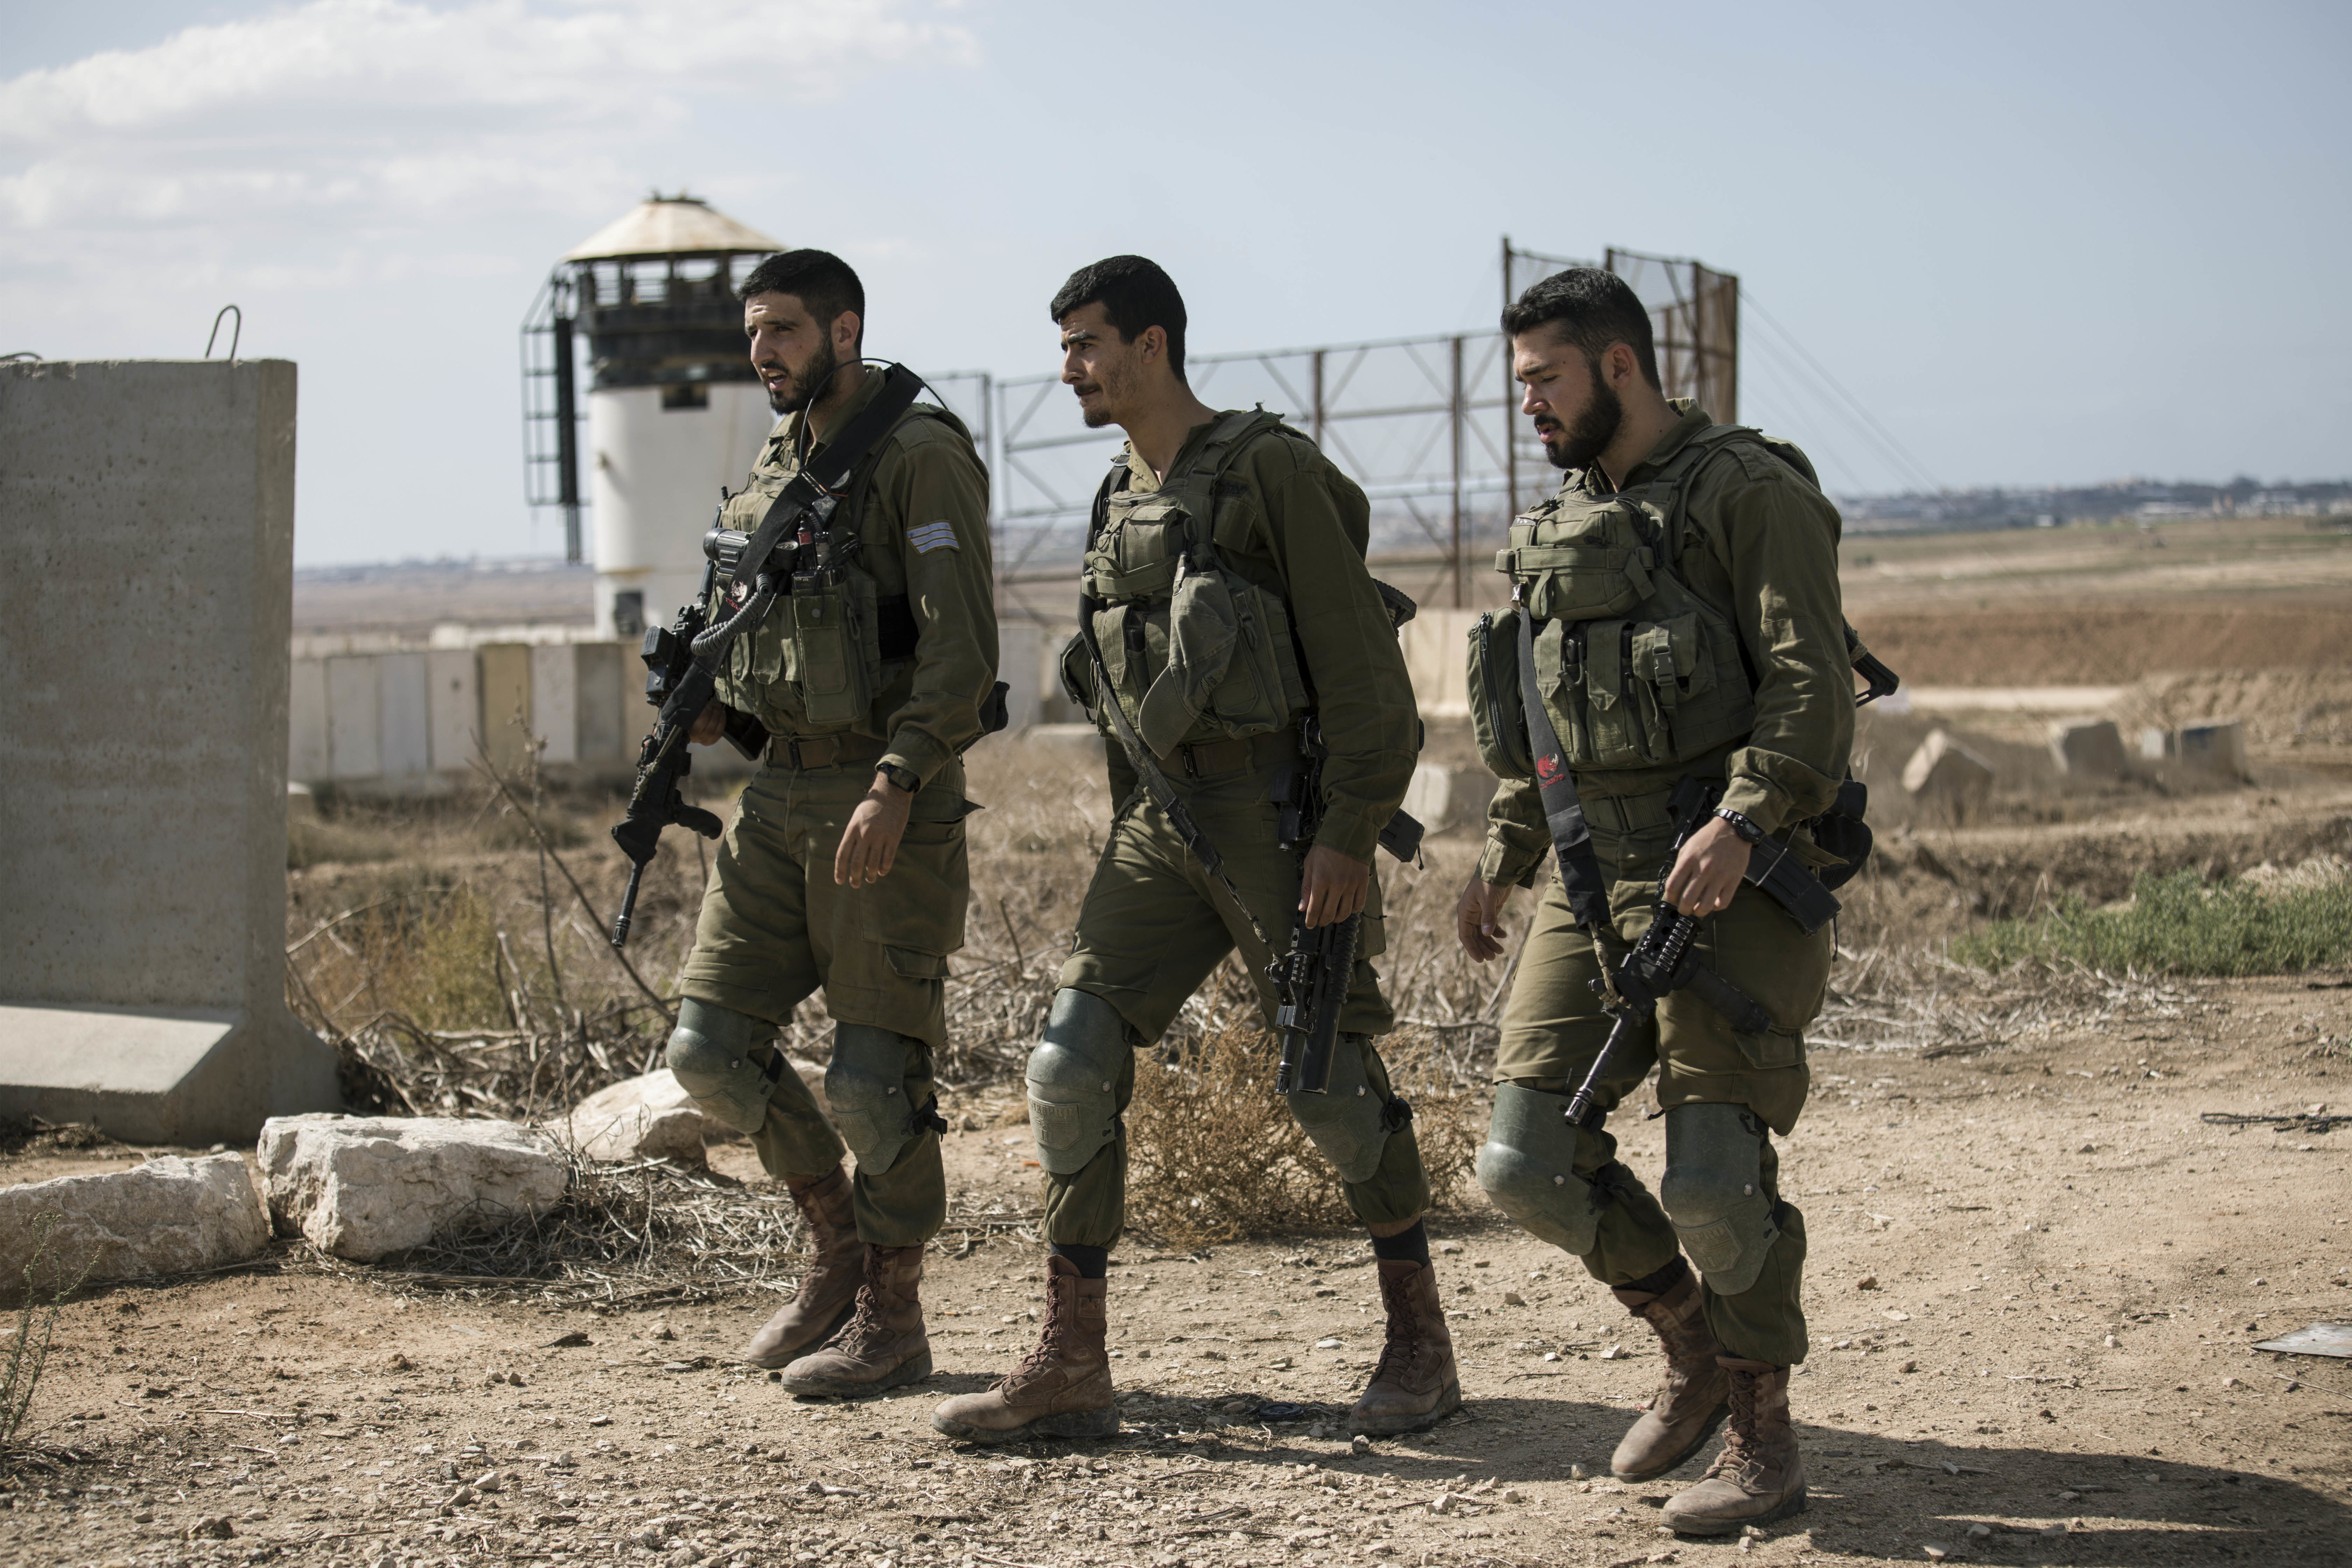 Israeli soldiers walk by an outpost near the Gaza Strip border, Saturday, Oct. 27, 2018. The Israeli military has struck dozens of targets across the Gaza Strip in response to heavy rocket fire and threatened to expand its air campaign to Syria after accusing Iranian forces in Damascus of orchestrating the rocket attacks. (AP Photo/Tsafrir Abayov)